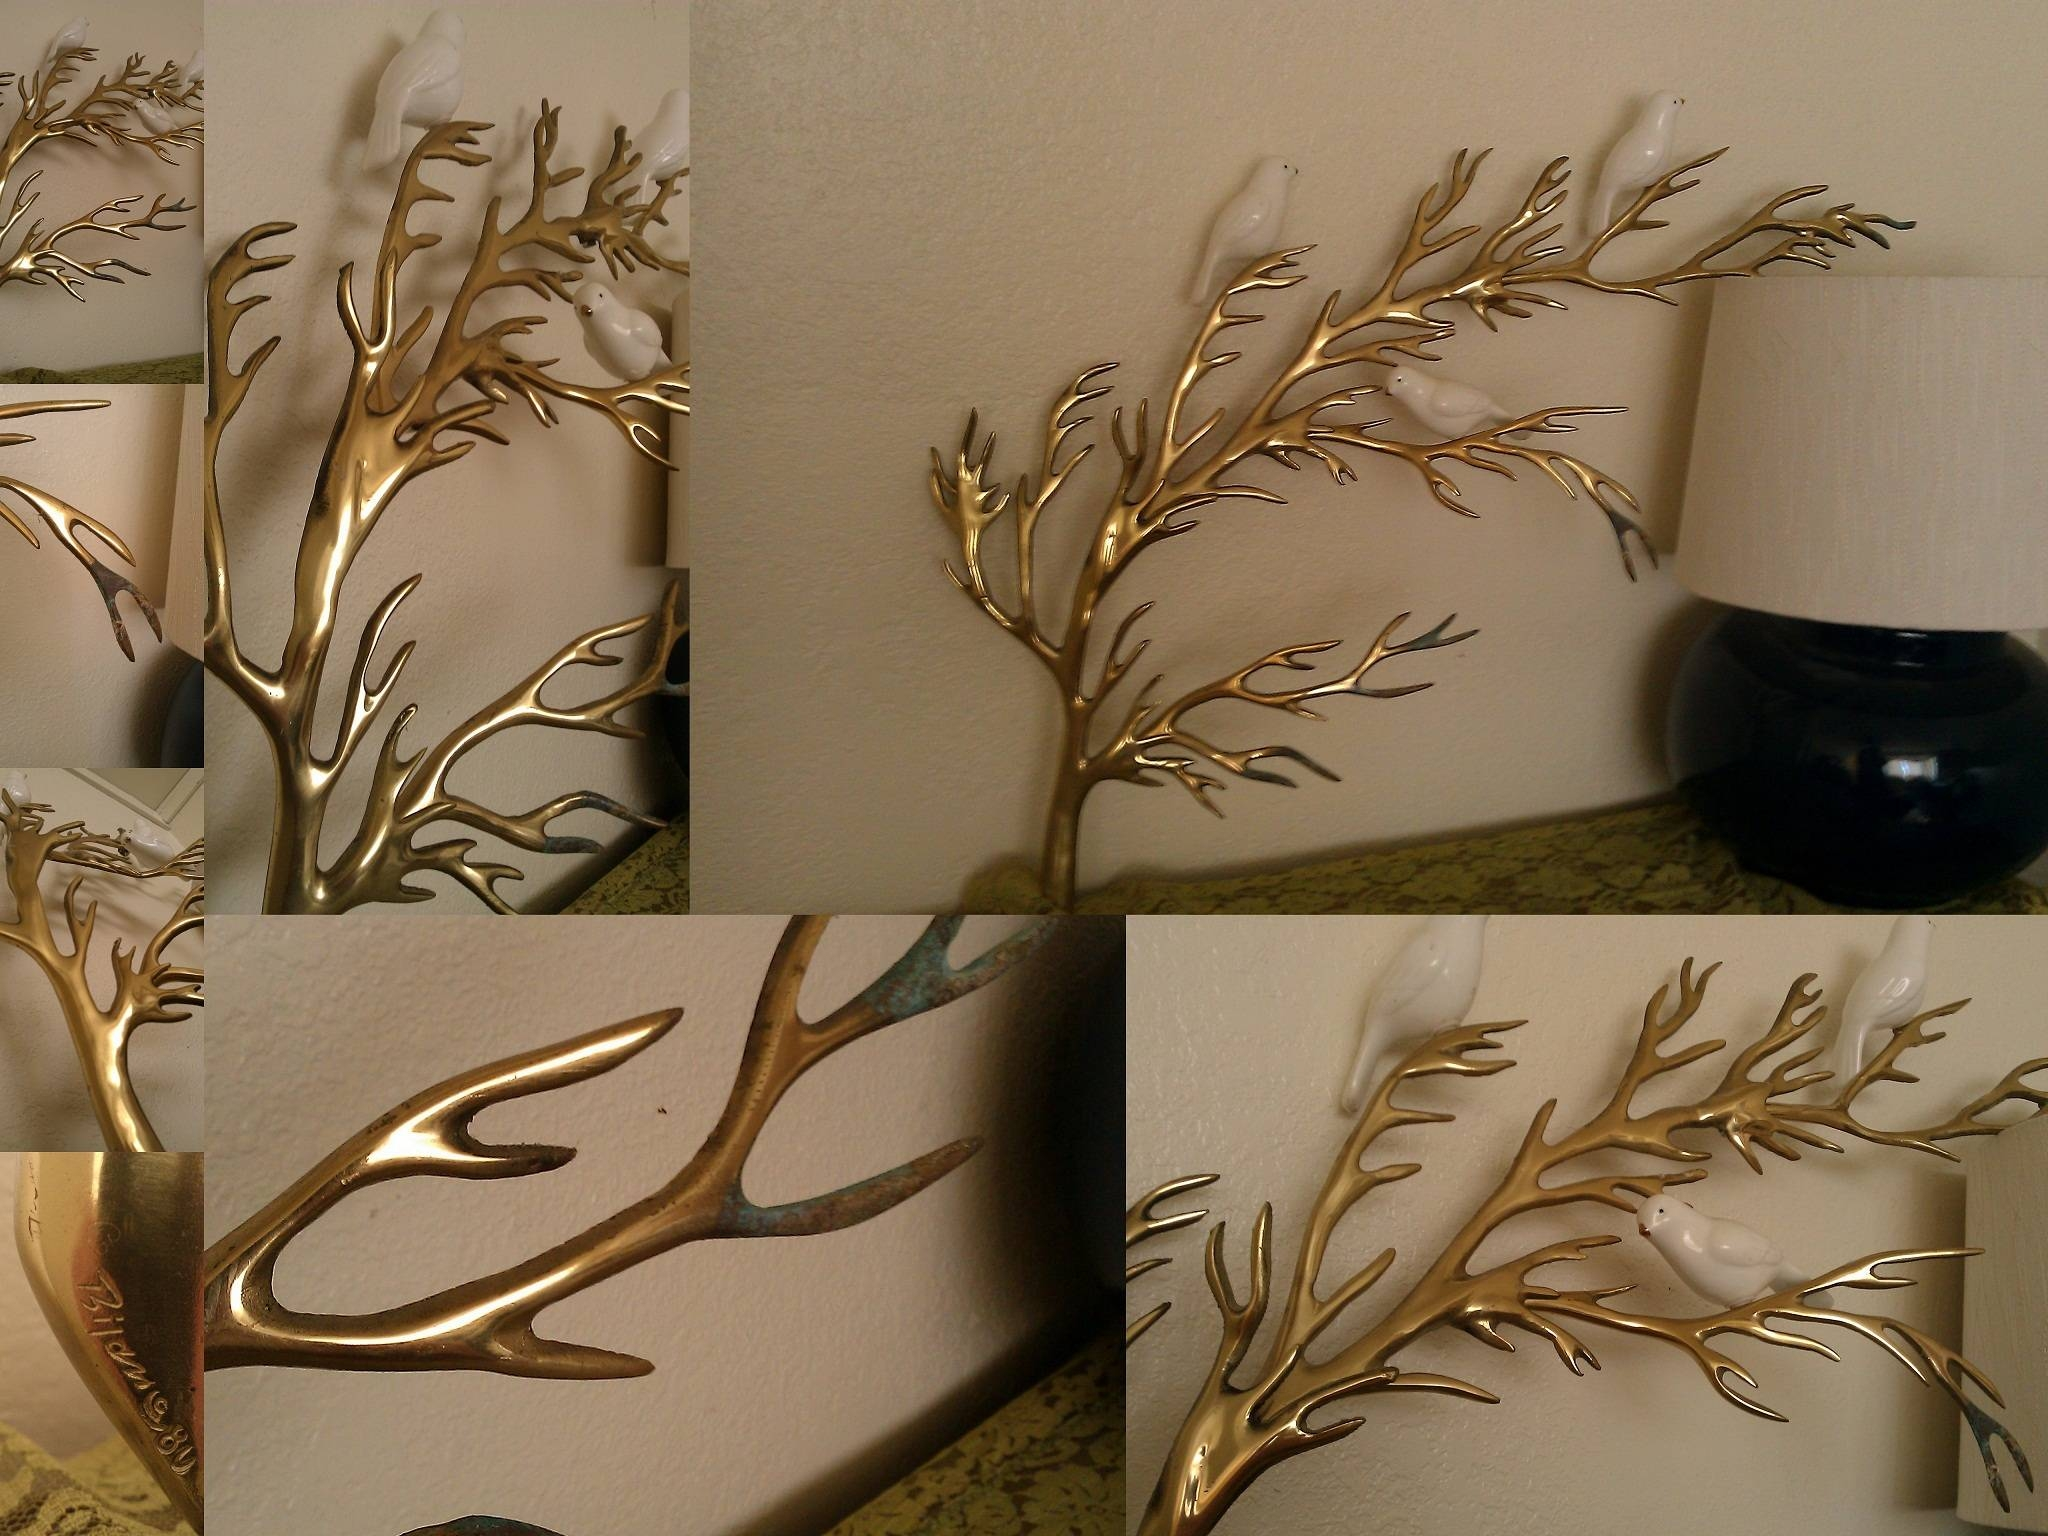 Wall Art Designs: Wall Art Sculpture Rare Vintage Bijan Brass Tree Pertaining To Most Recent Tree Wall Art Sculpture (View 19 of 20)